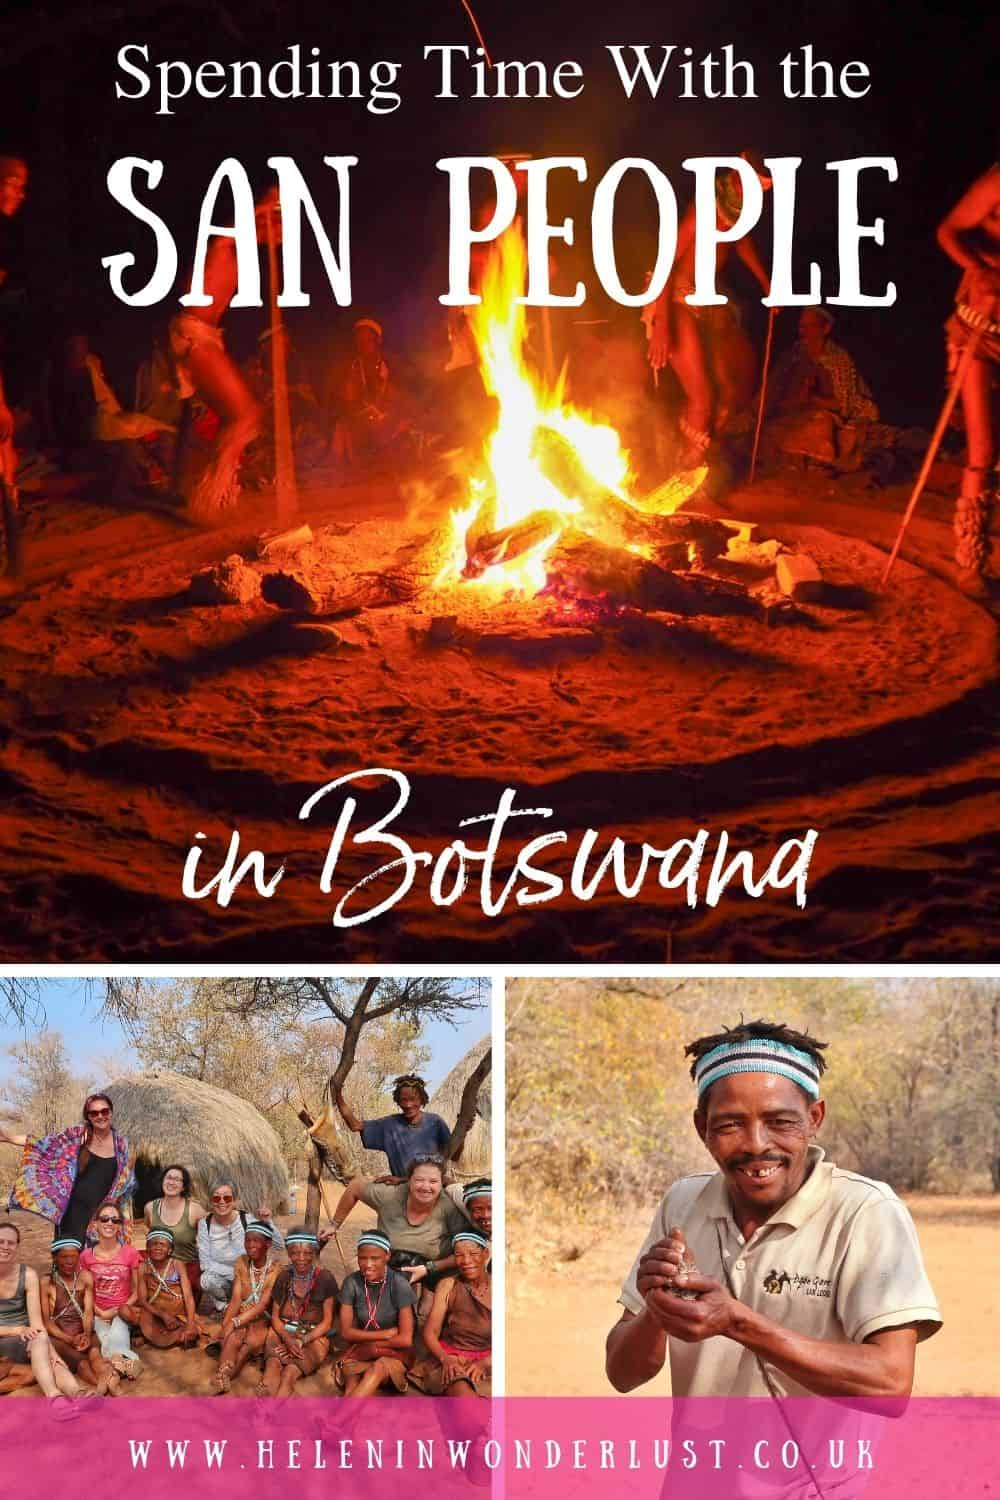 Spending Time with the San People in Botswana